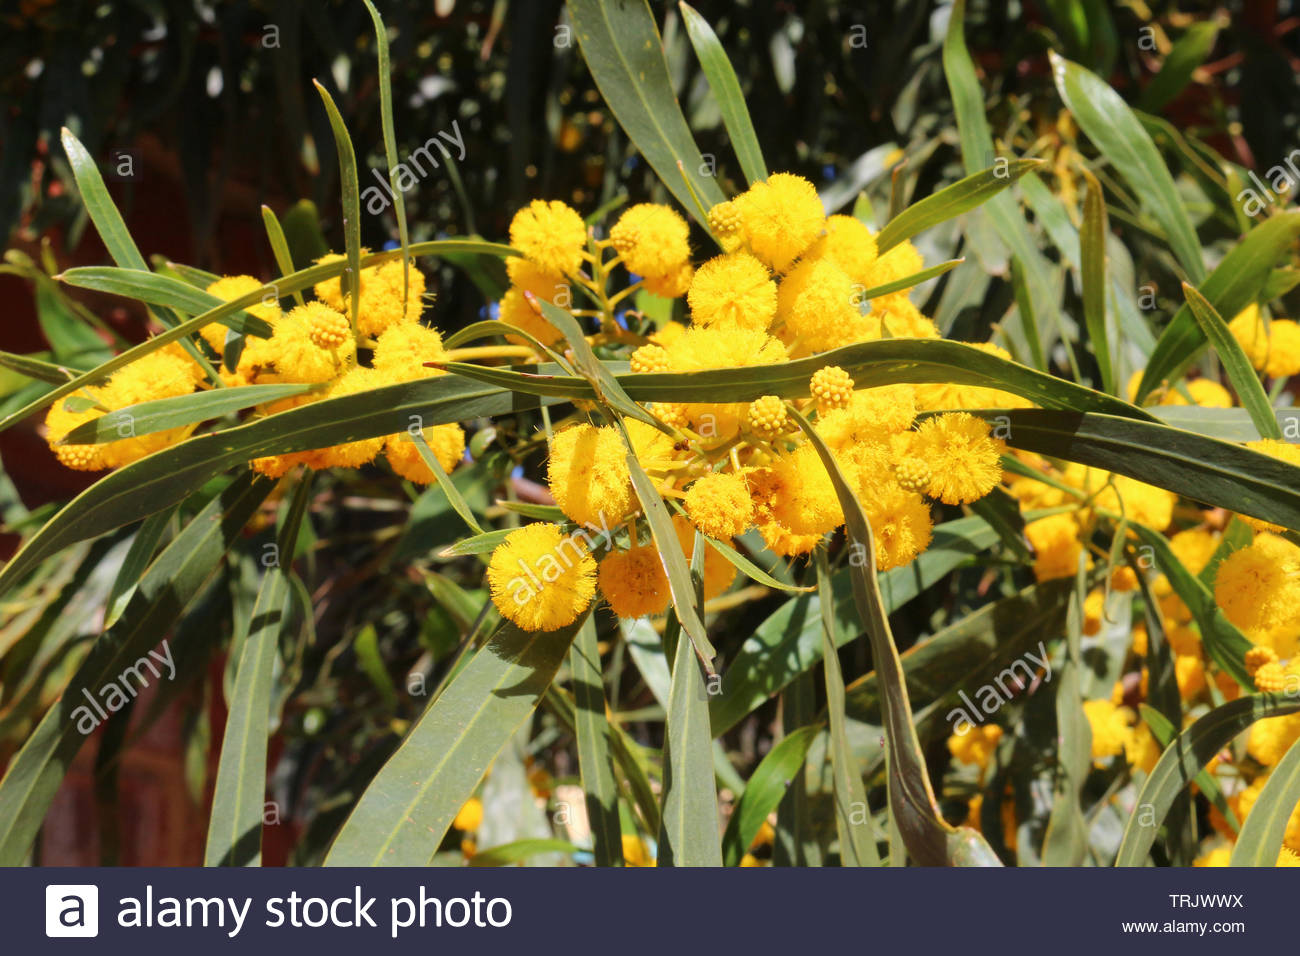 Acacia Flower Stock Photos Acacia Flower Stock Images Alamy